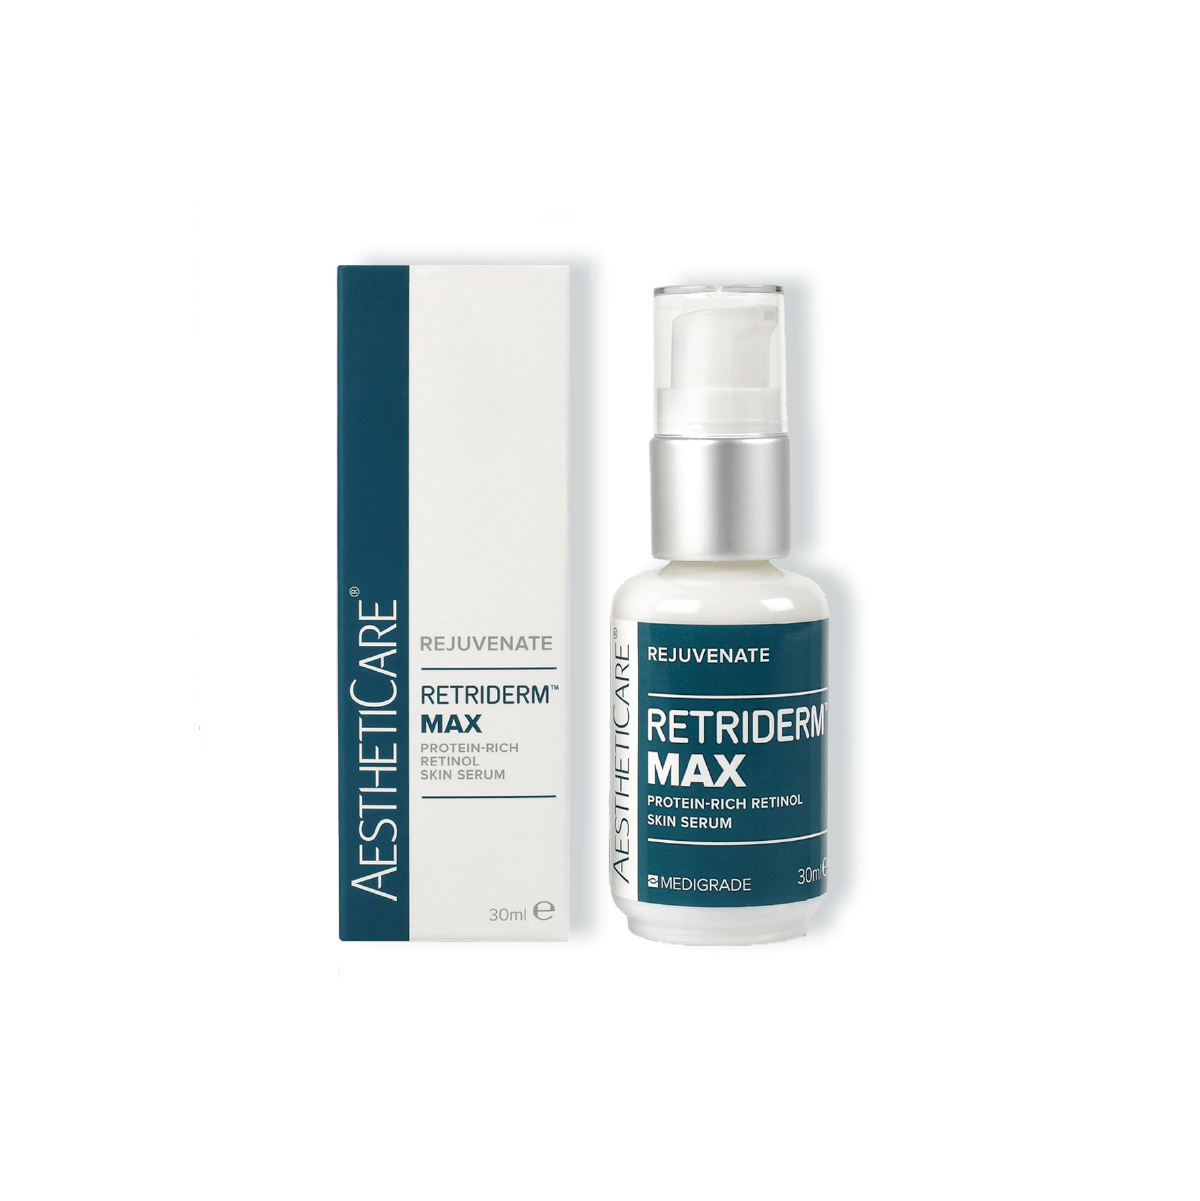 Retriderm Retinol Max Serum 30ml